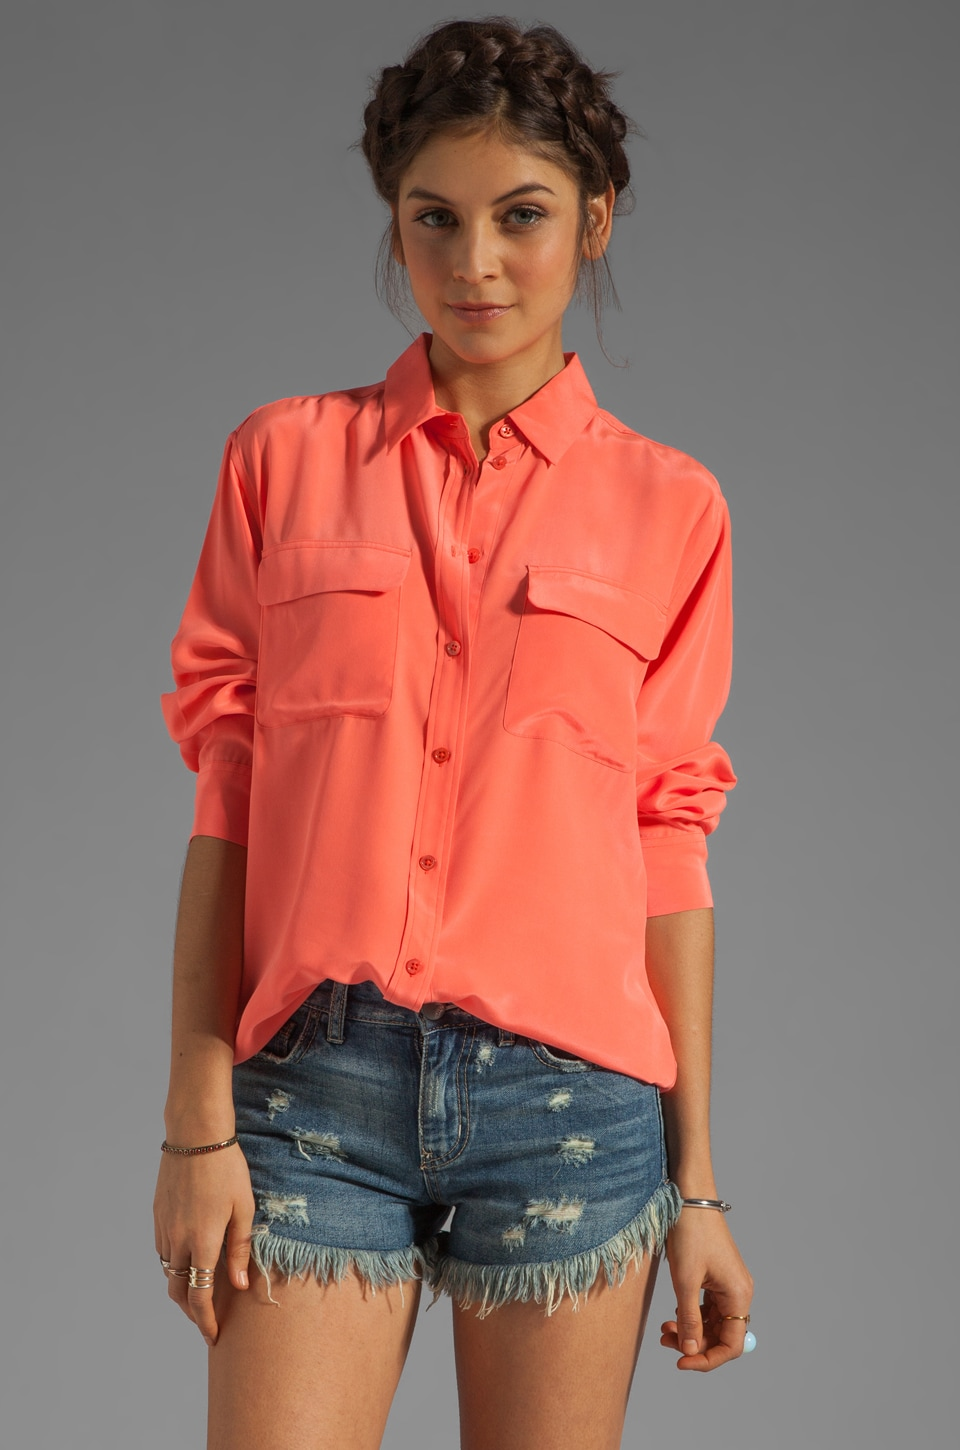 Equipment Signature Blouse in Neon Orange